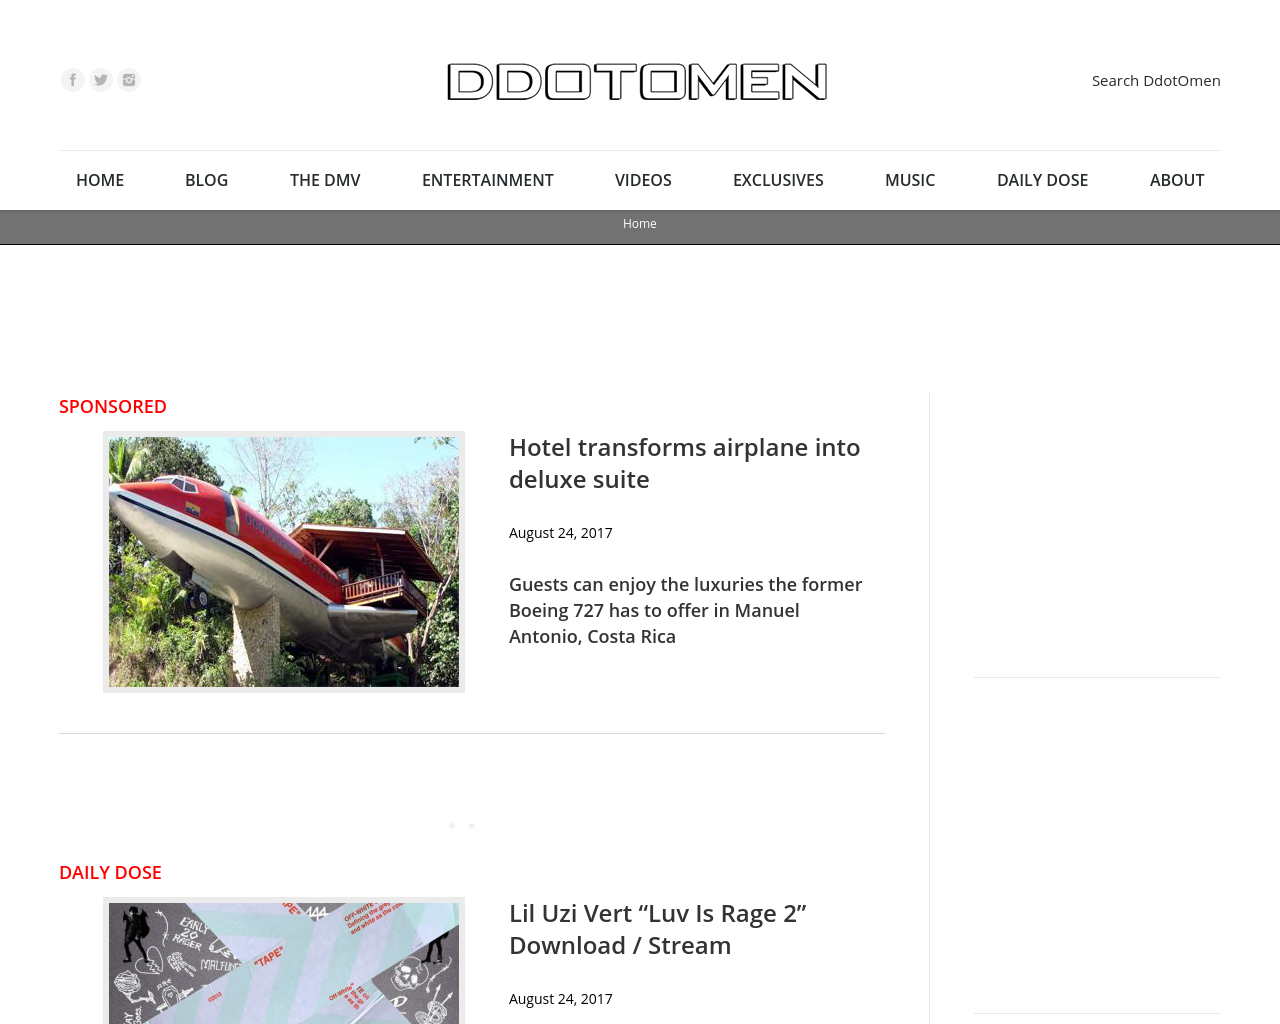 DDotOmen.com-Advertising-Reviews-Pricing